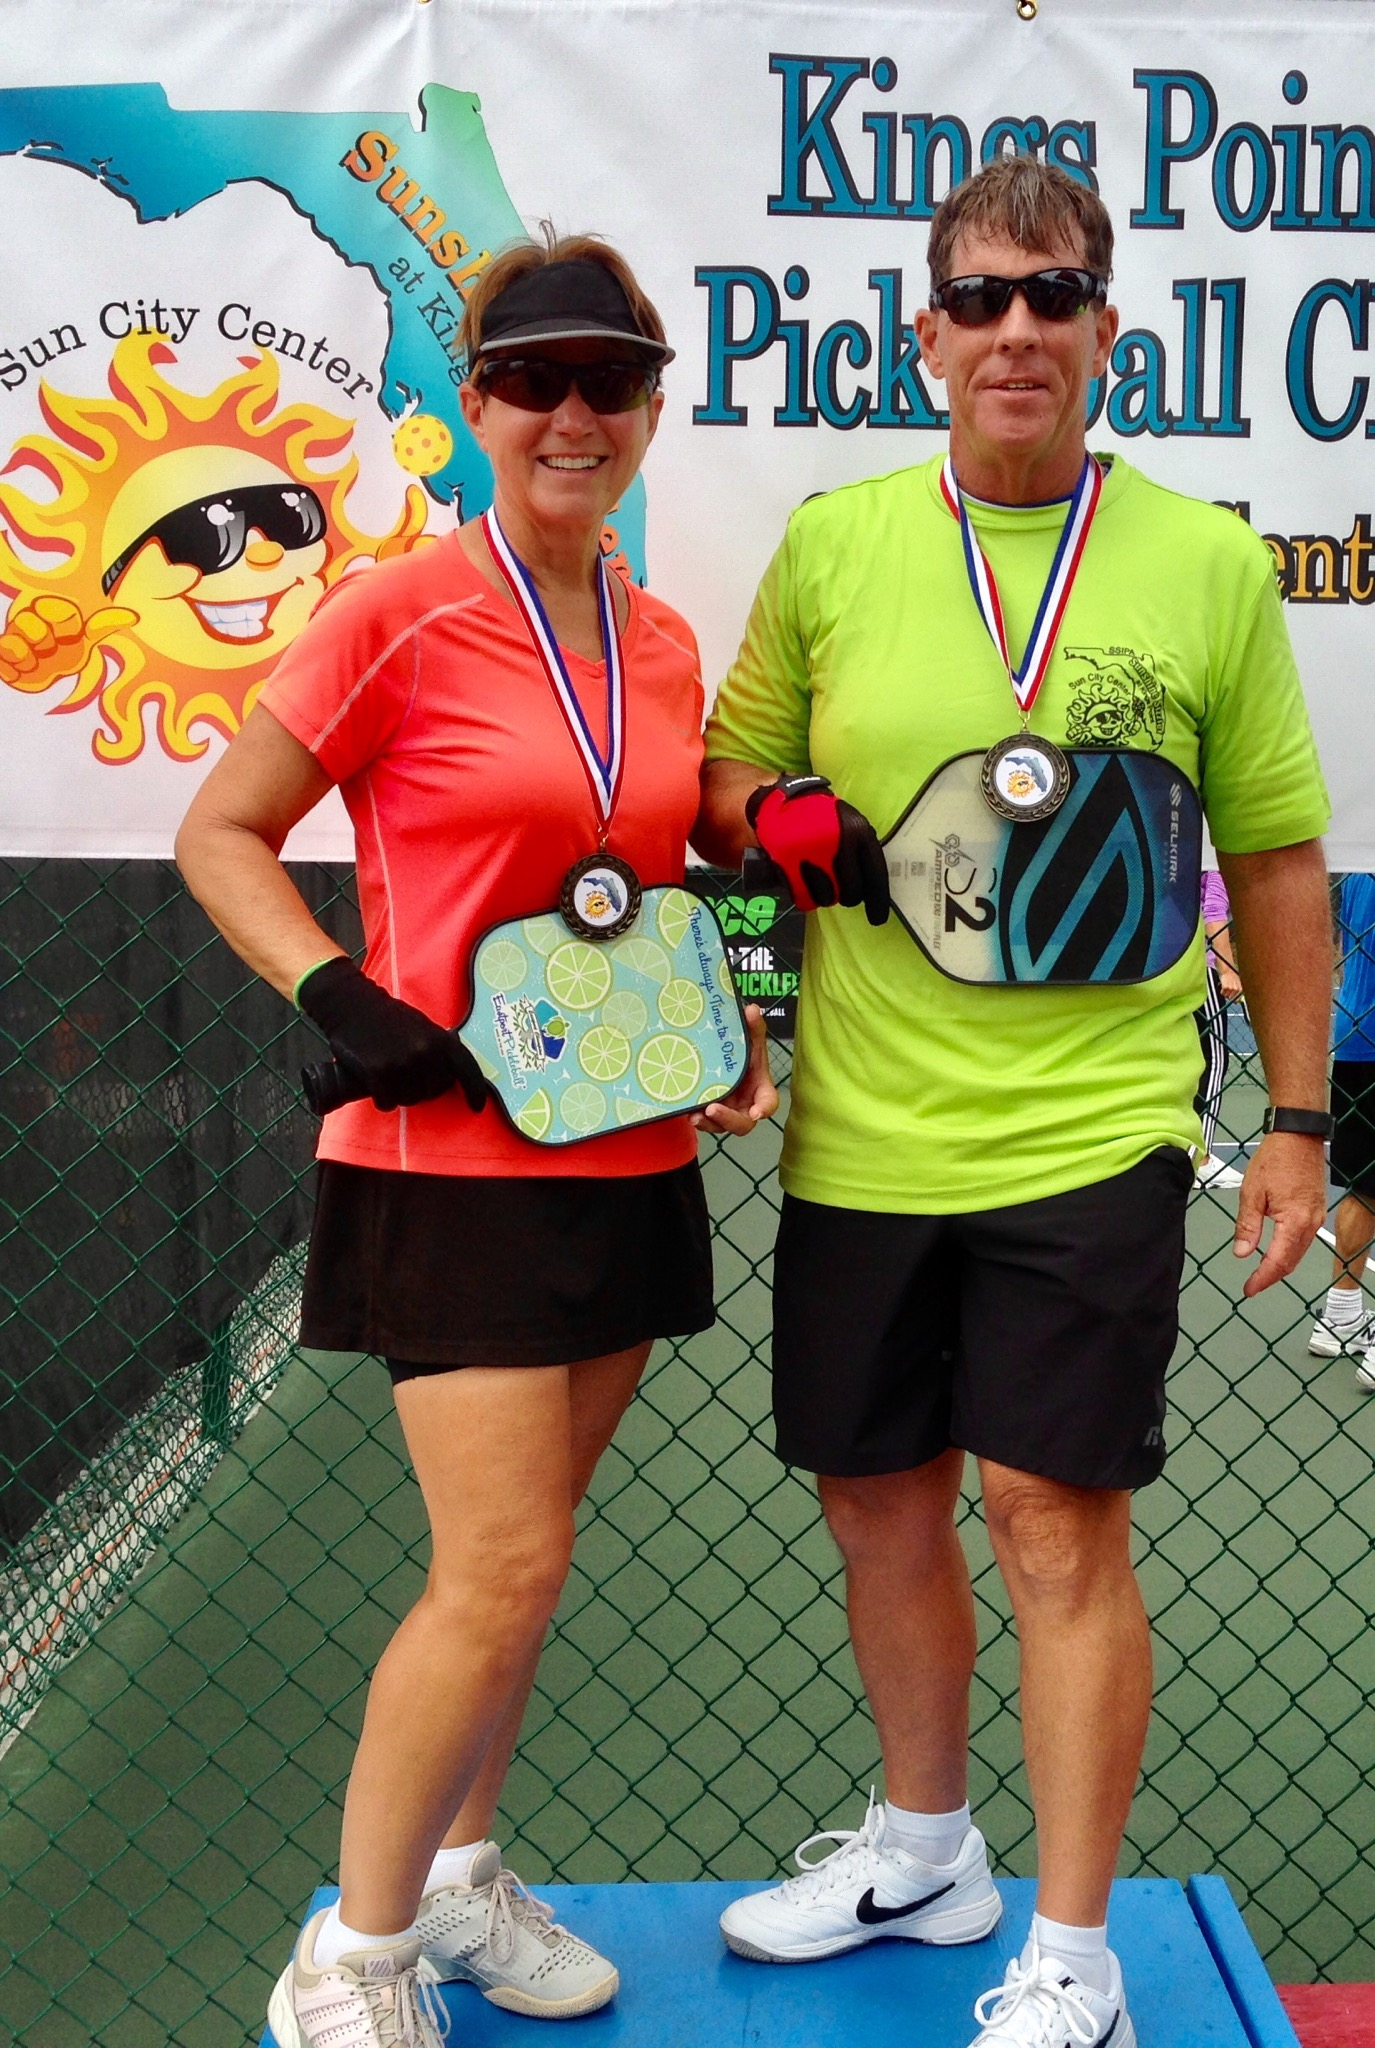 She Struck Gold Again at the Sunshine Sizzler in King's Point, Sun City, Florida at the USAPA Sanctioned Tournament. - March 18, 2019 - It's no coincidence that Mary struck gold again with her beautiful Margarita paddle in the 50-59 Mixed Doubles, division.Congrats Mary..